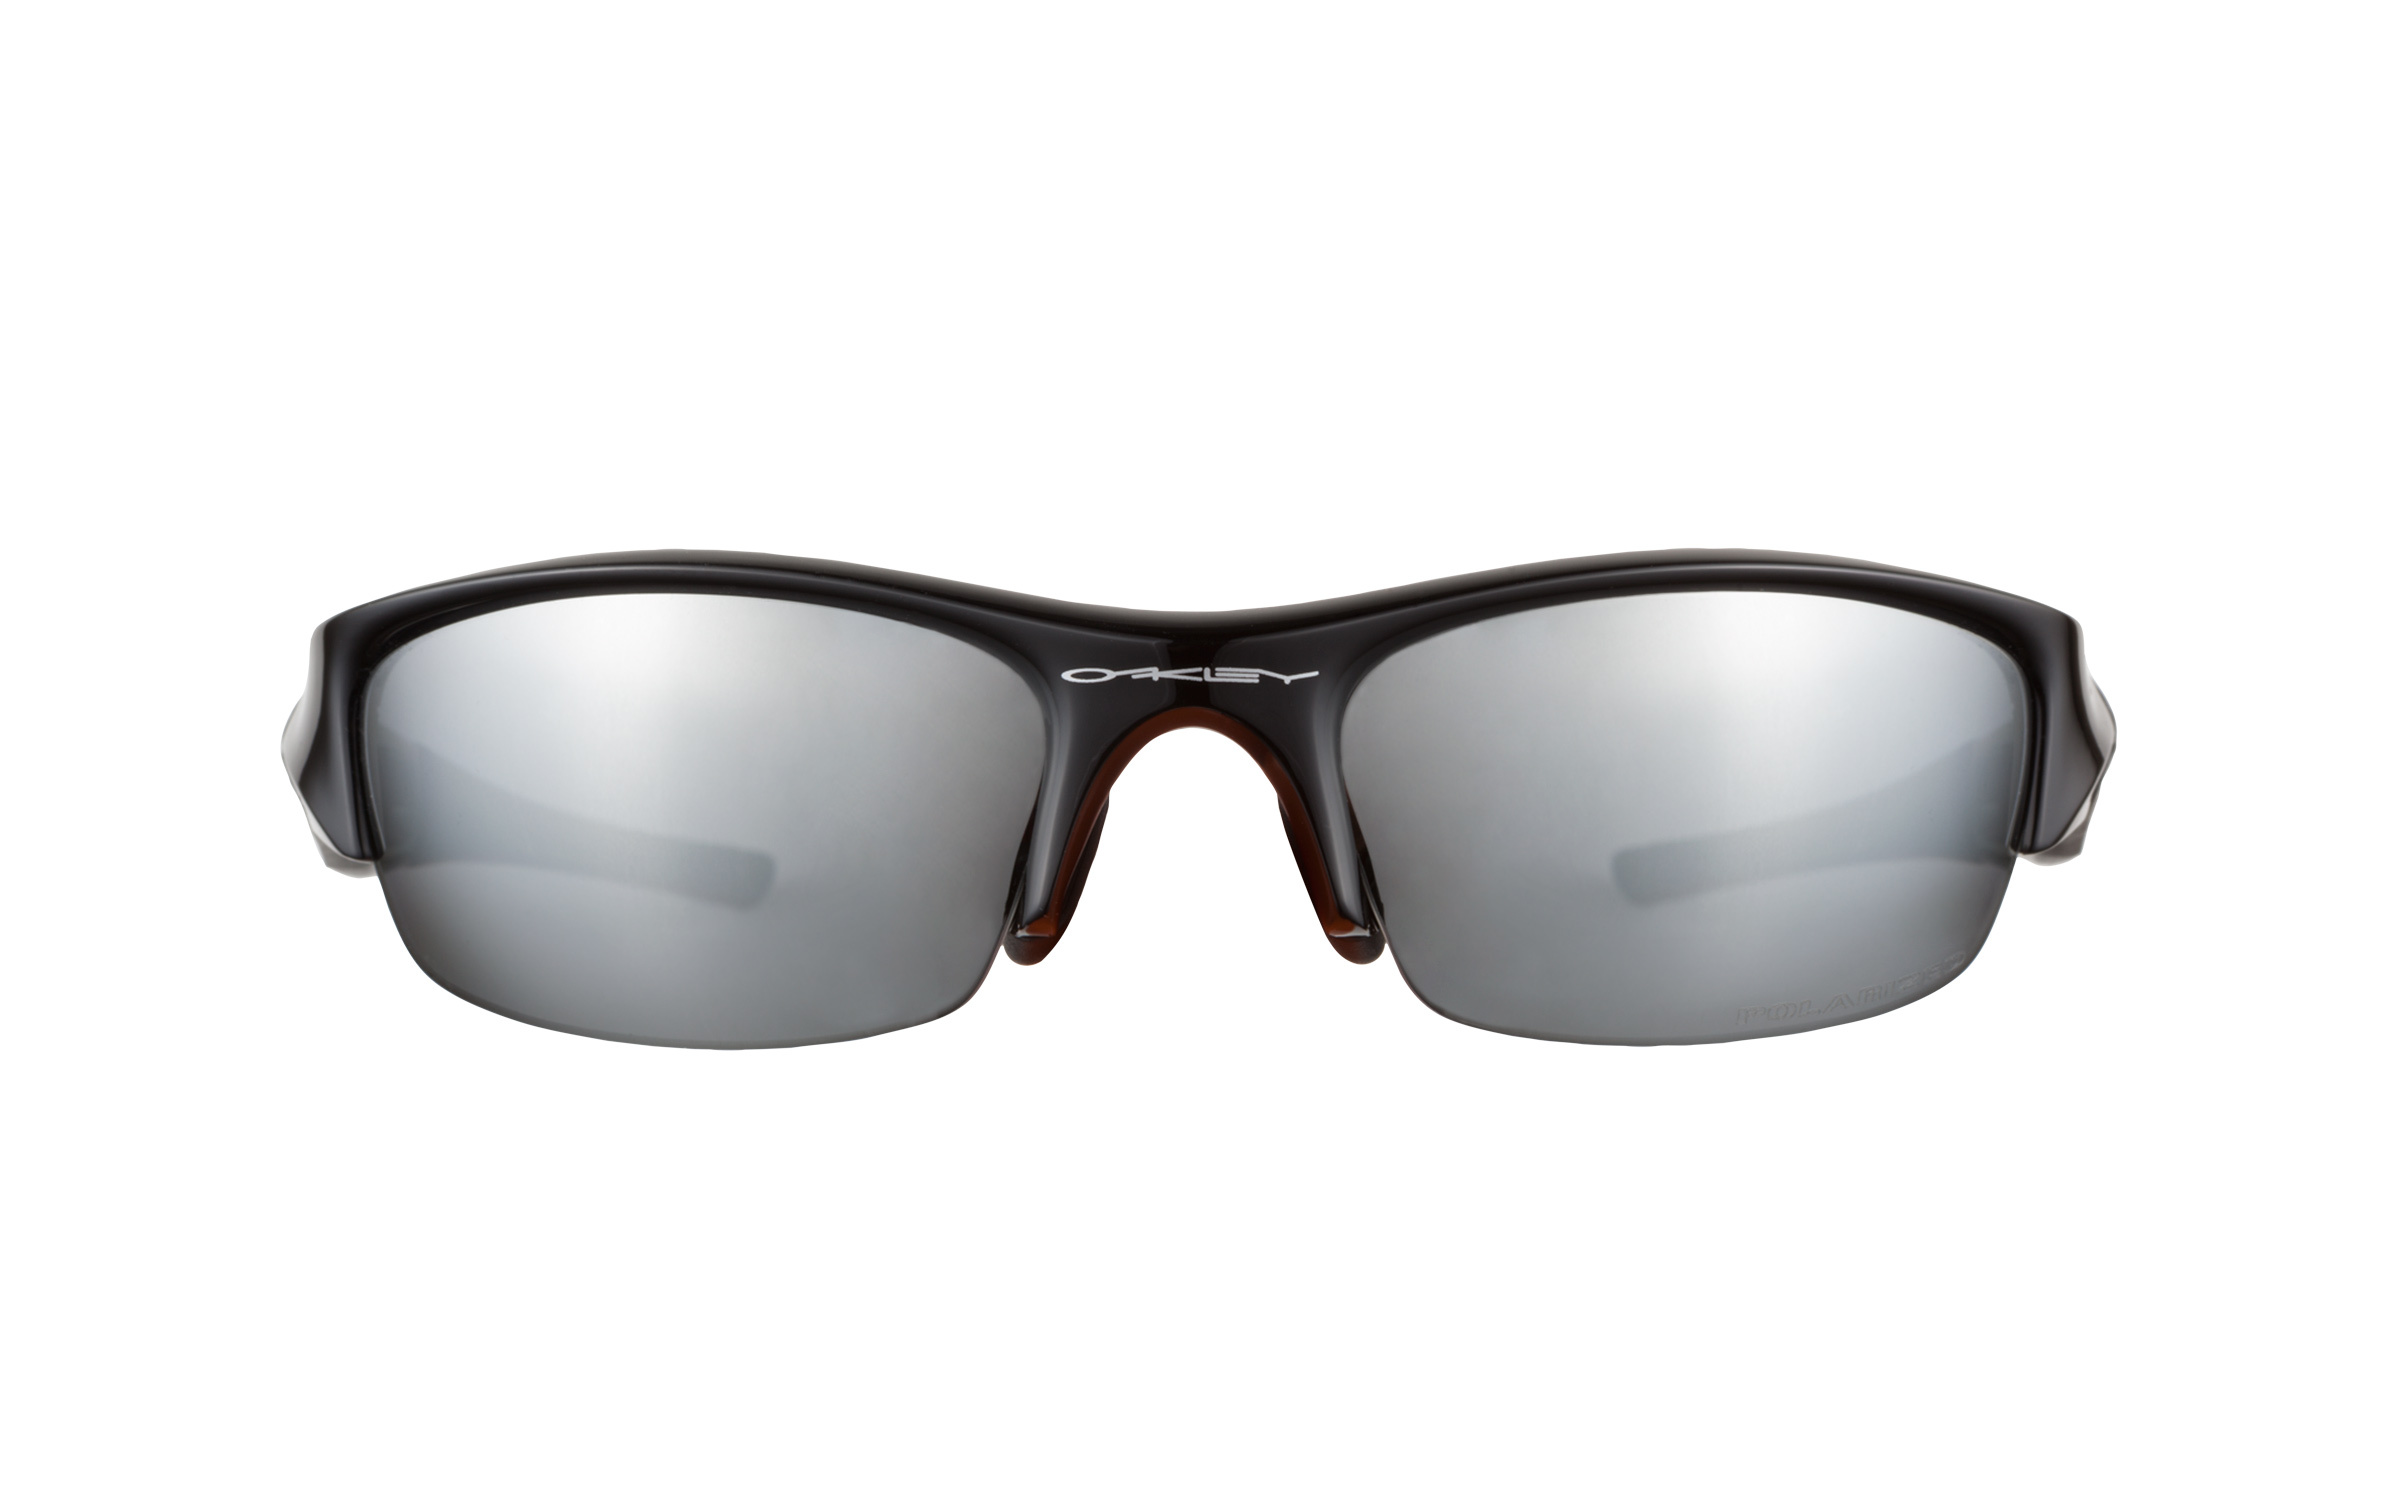 Oakley Flak Jacket Polarized Sunglasses  product image of oakley flak jacket black polarized